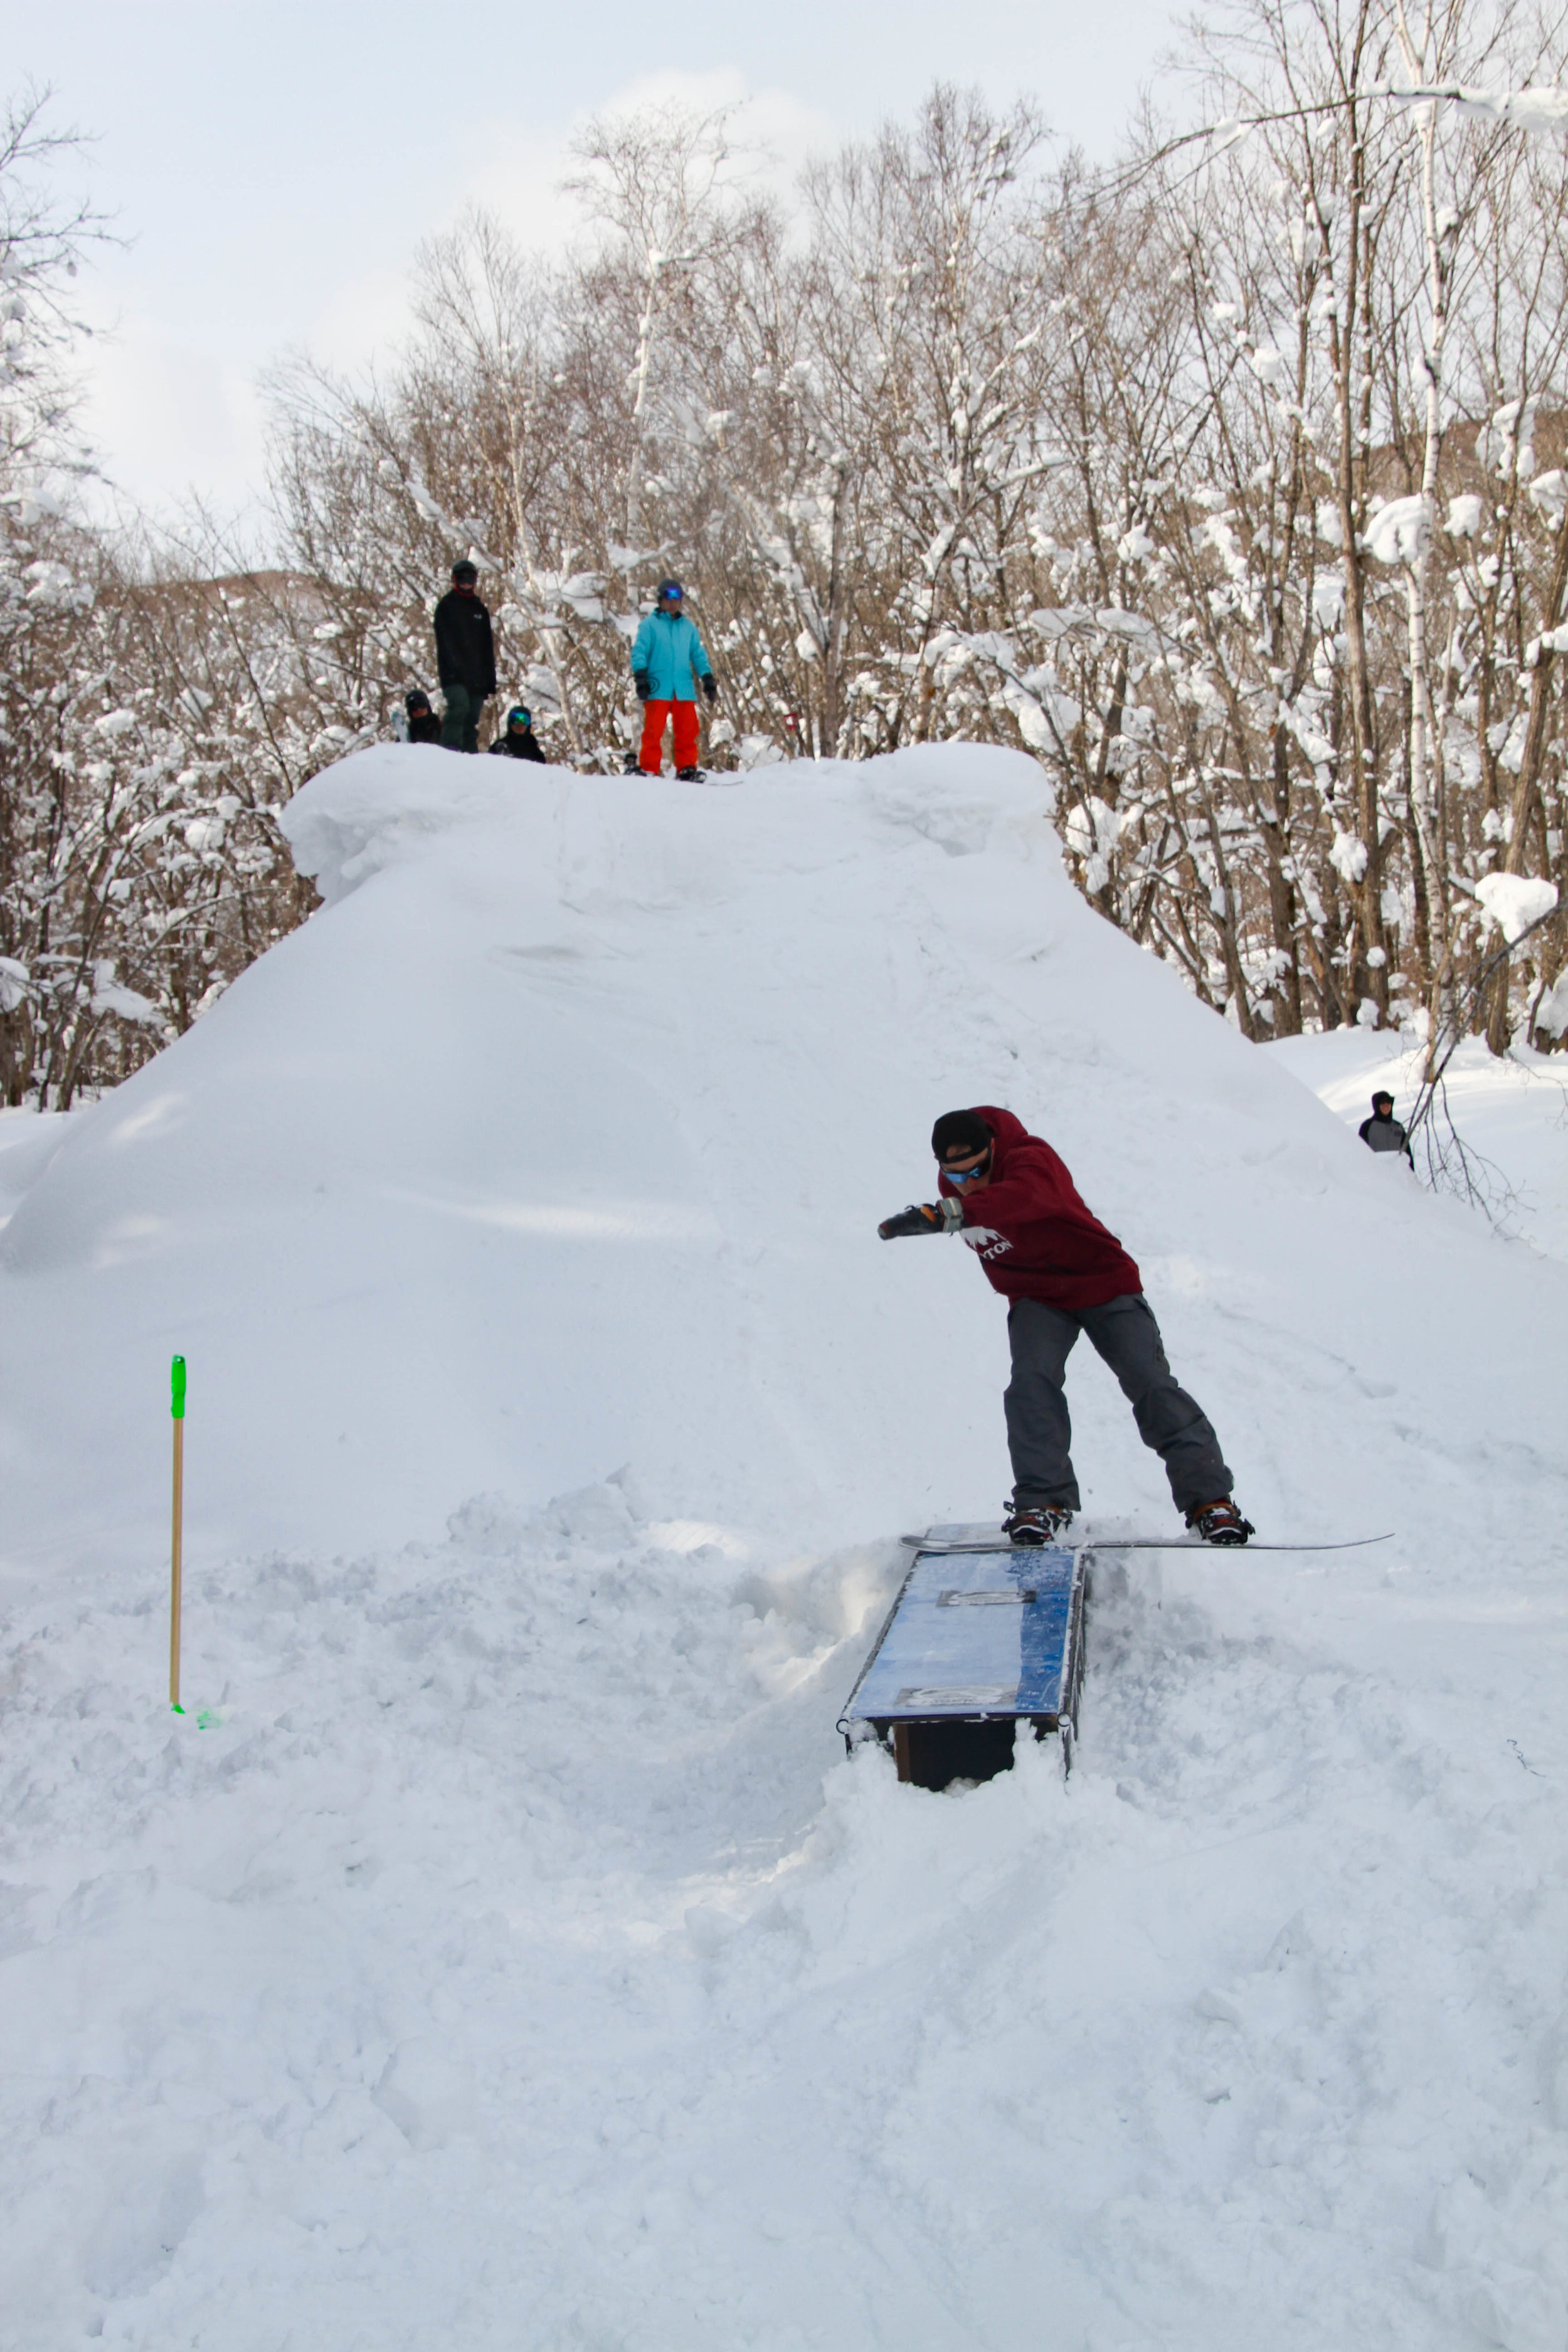 The week two RIDE snowboards rail jam was definitely one of the highlights, it was super progressive and entertaining to watch. -